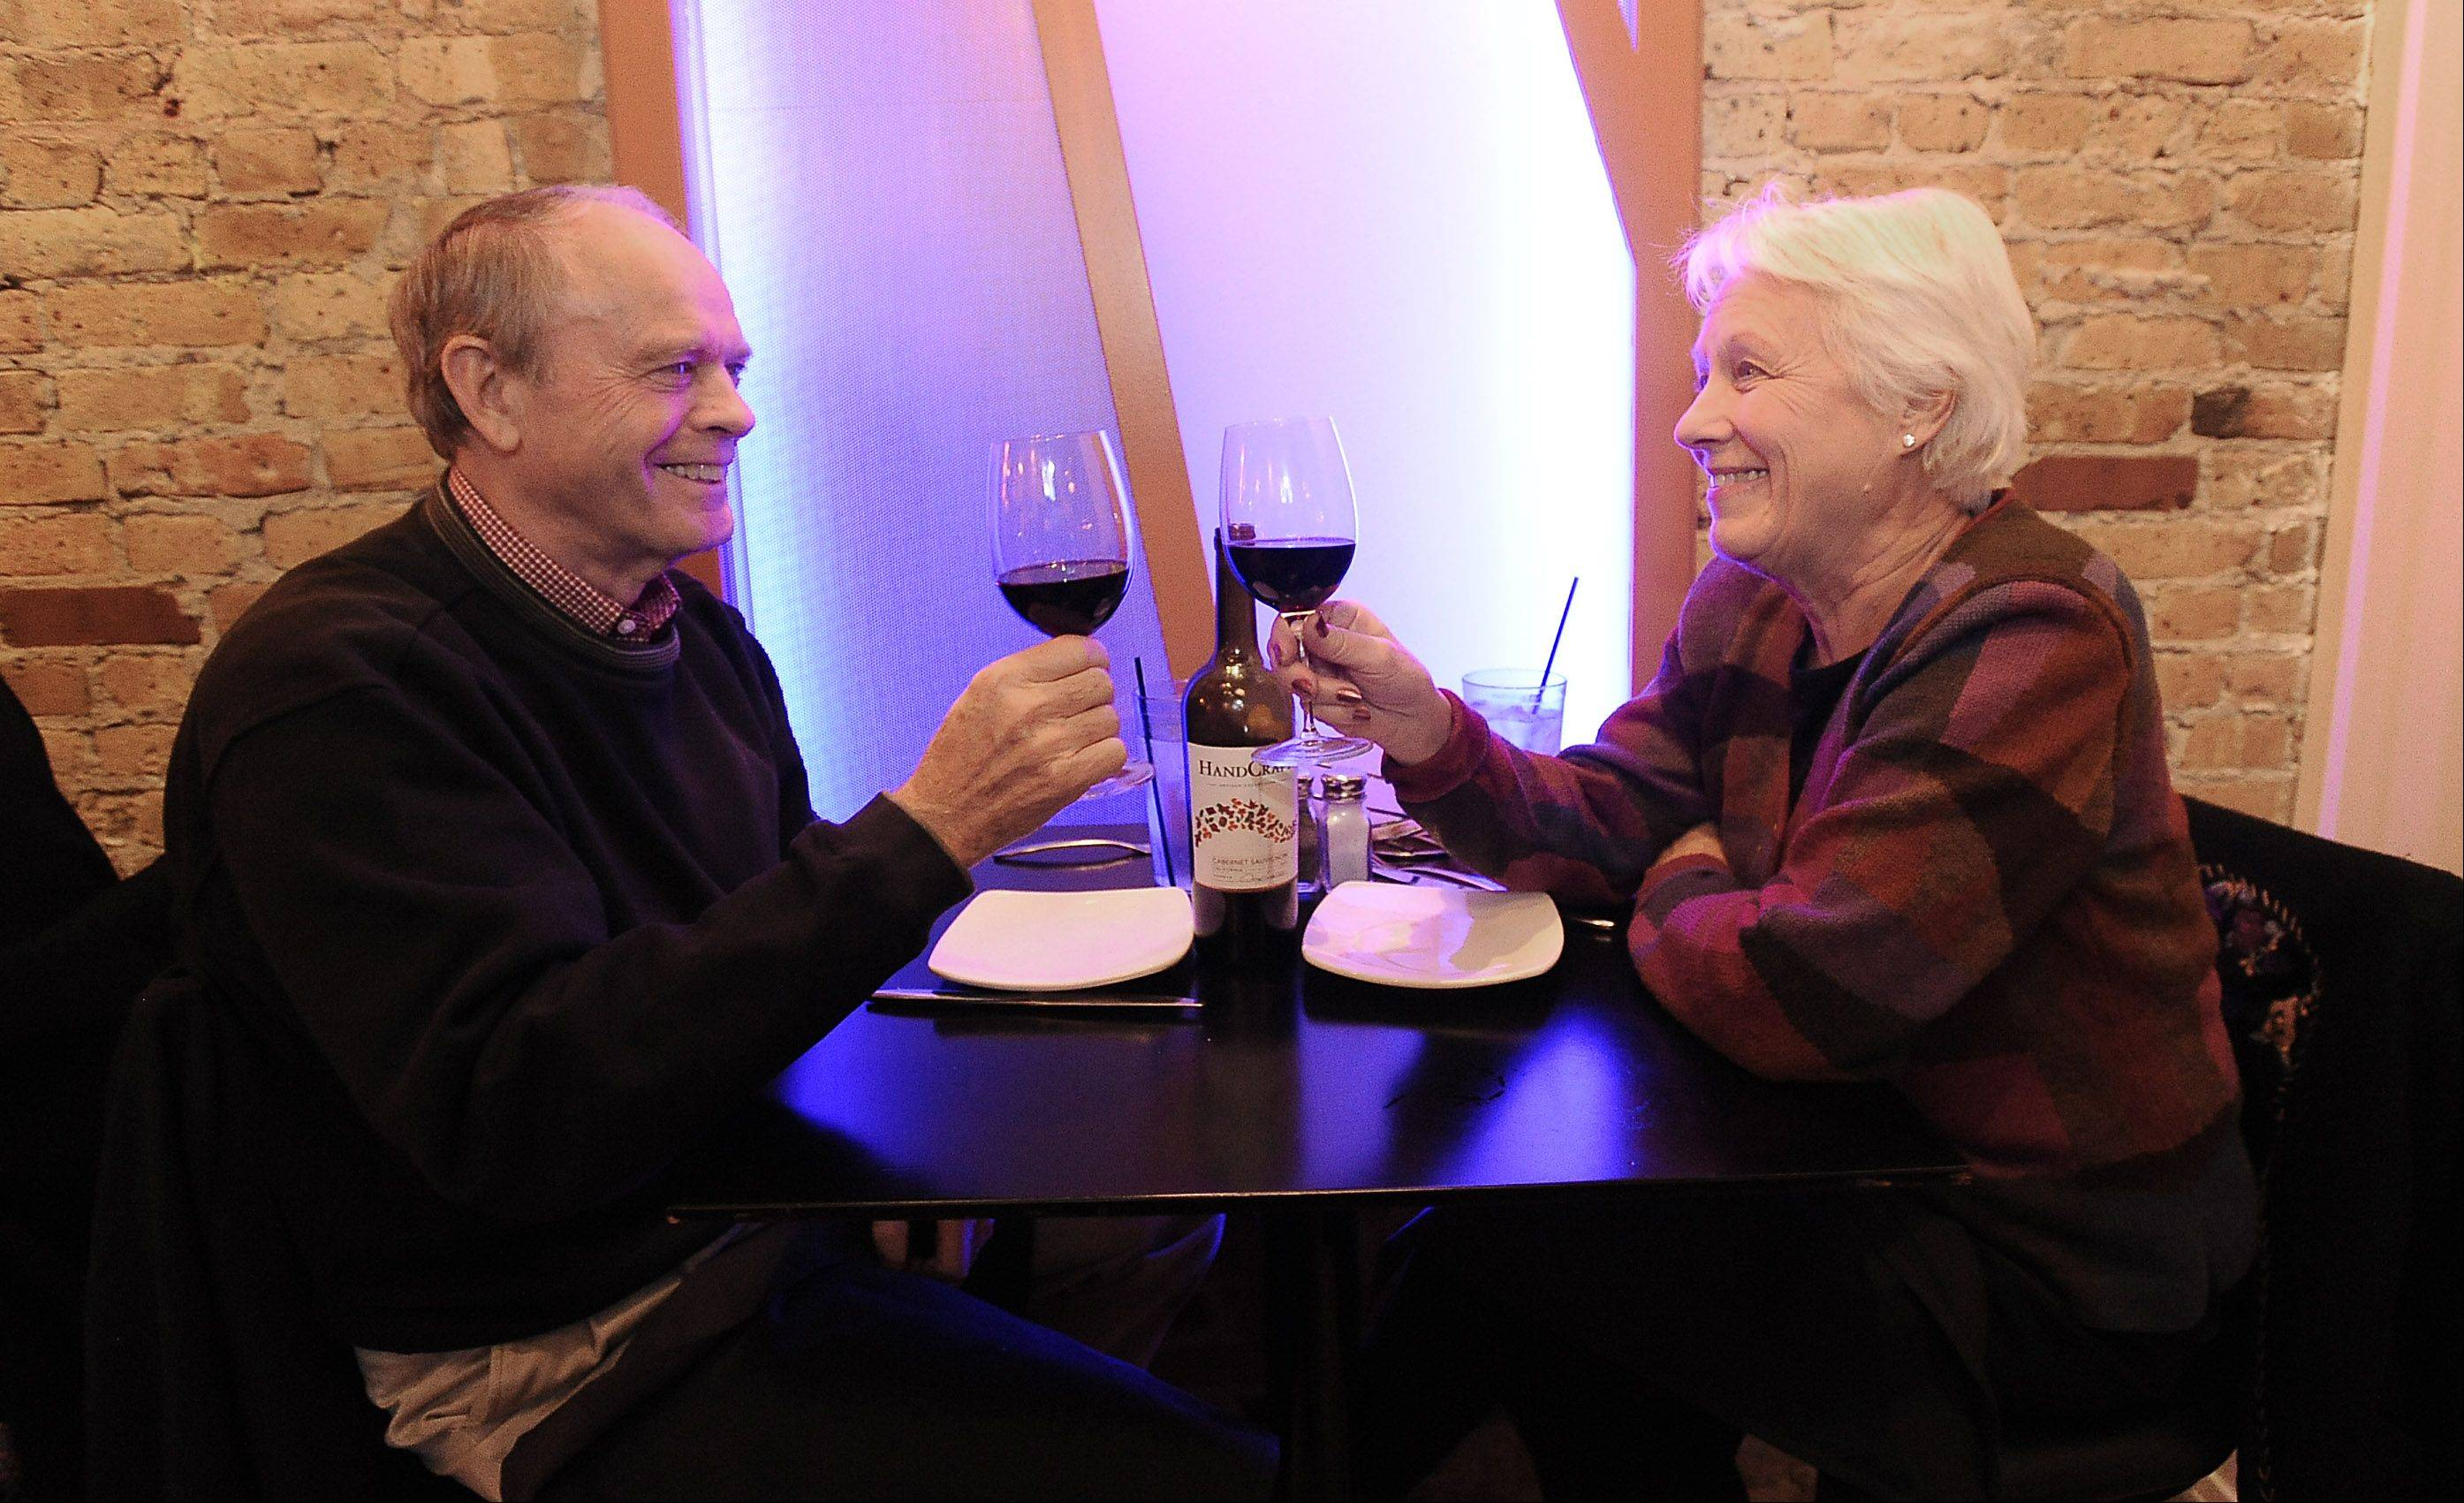 Vaughn and Barbara Simon of Barrington enjoy glasses of wine at The Annex in Barrington.